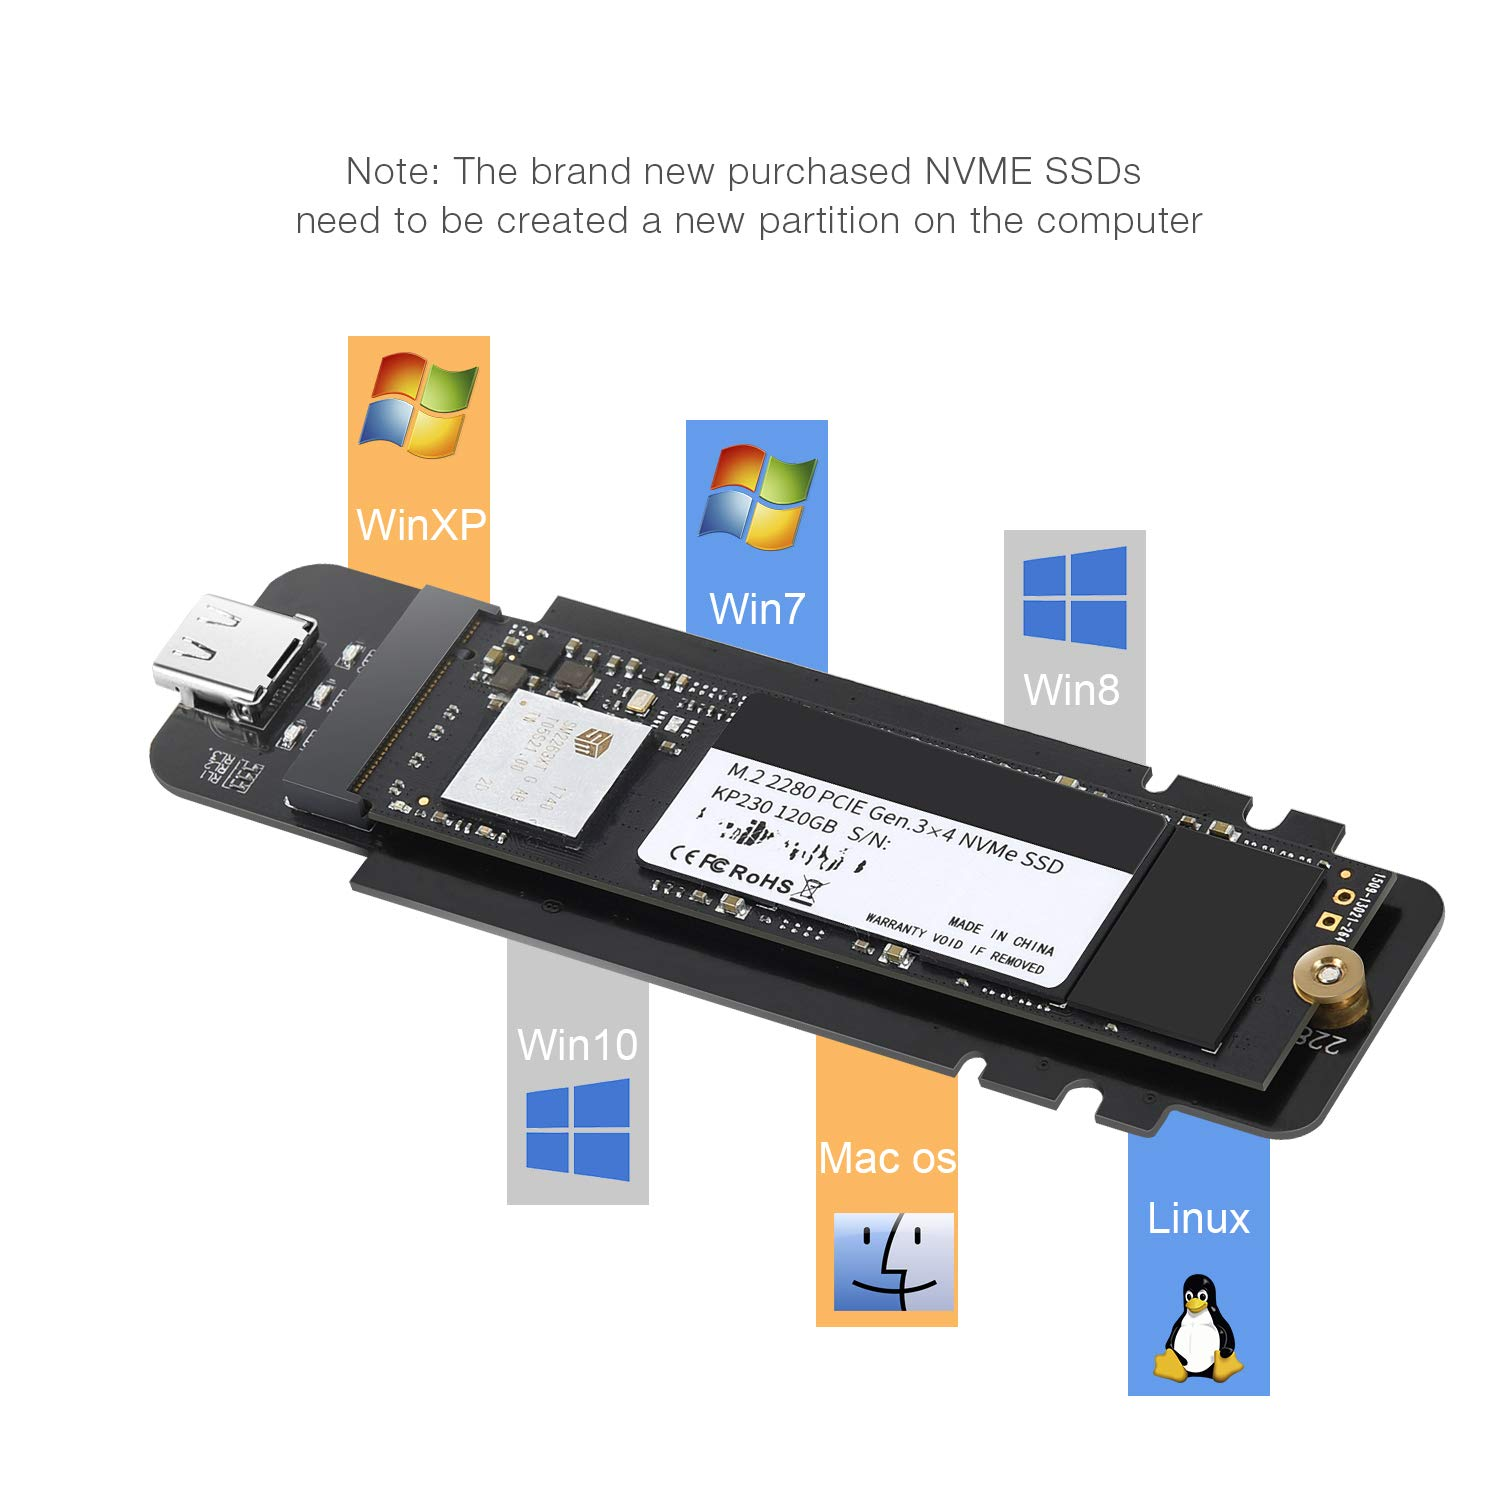 USB 3.1 Type-C to M.2 NVMe SSD Adapter,M-Key PCI-E NVMe SSD Based to USB 10GBPS External M.2 PCI-E NVMe Hard Drive Reader Adapter Support Drive Type 2230 2242 2260 2280 by CHOETECH (Image #5)